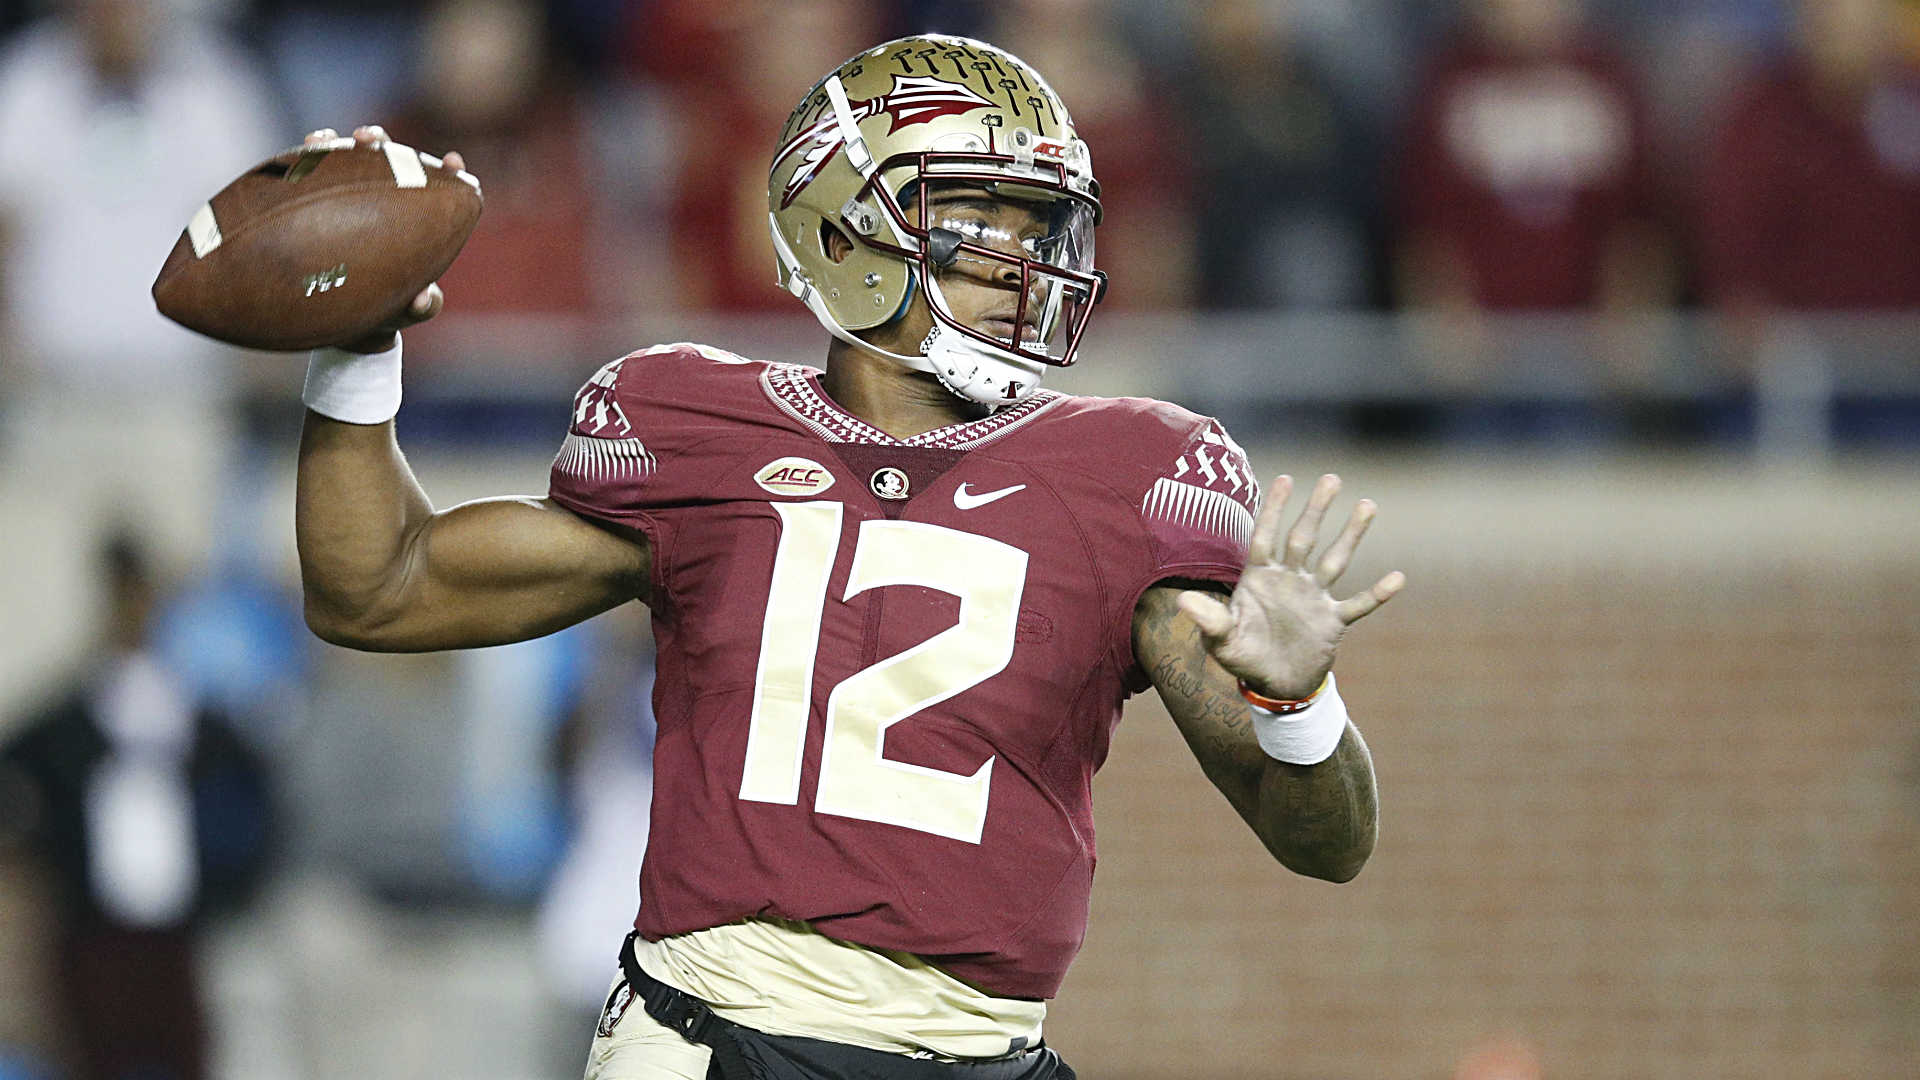 Police investigating Florida State QB Deondre Francois after alleged domestic violence incident